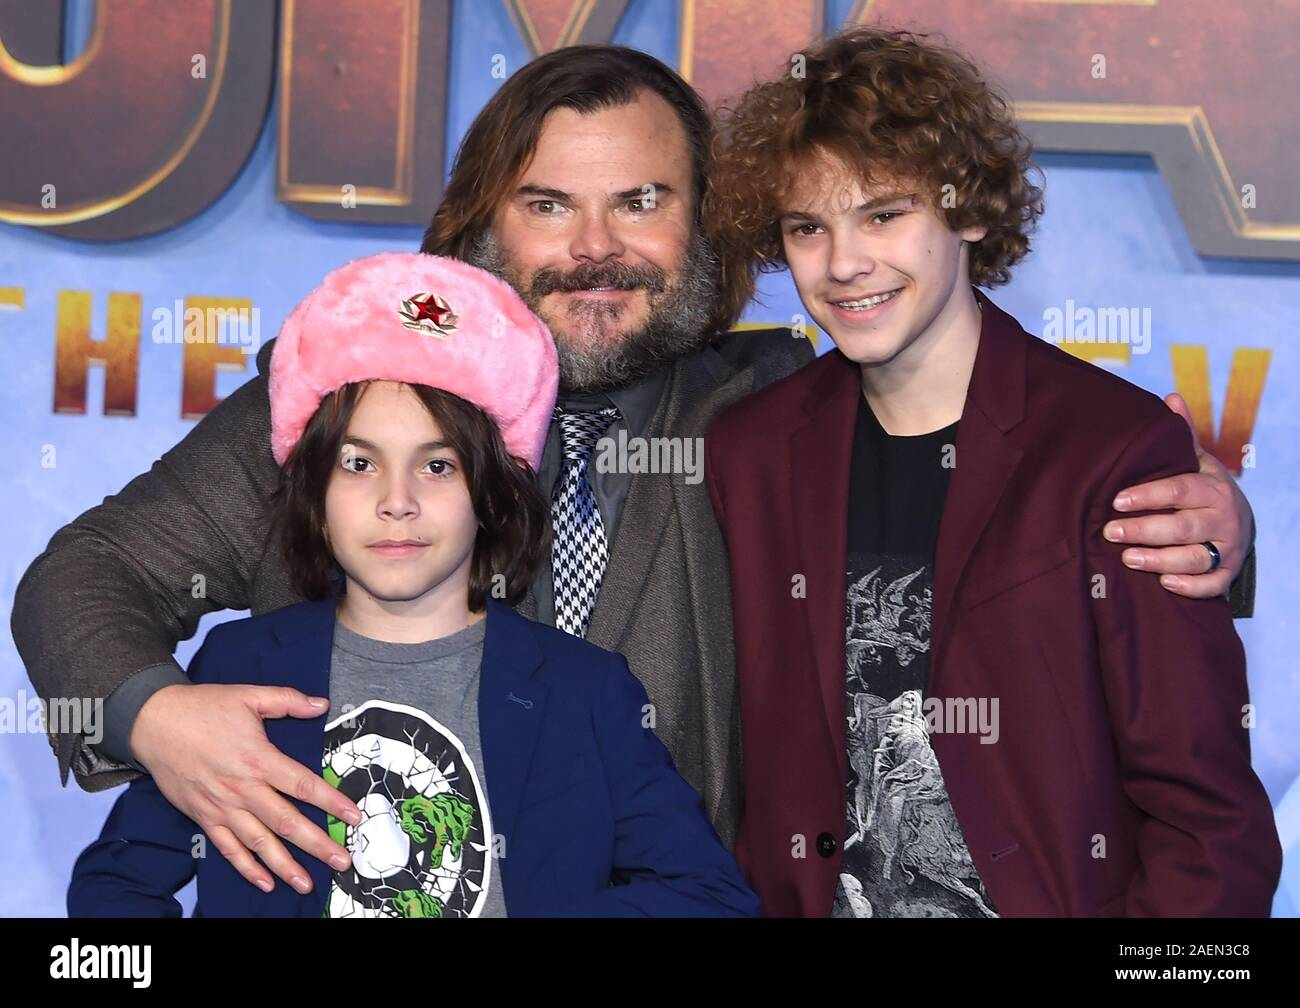 Thomas David Black And Samuel Jason Black High Resolution Stock Photography And Images Alamy In fact, both of his parents are involved in the entertainment industry. https www alamy com december 9 2019 hollywood california usa thomas david black jack black and samuel jason black arrives for the premiere of the film jumanji the next level at the chinese theater credit image lisa oconnorzuma wire image336065864 html